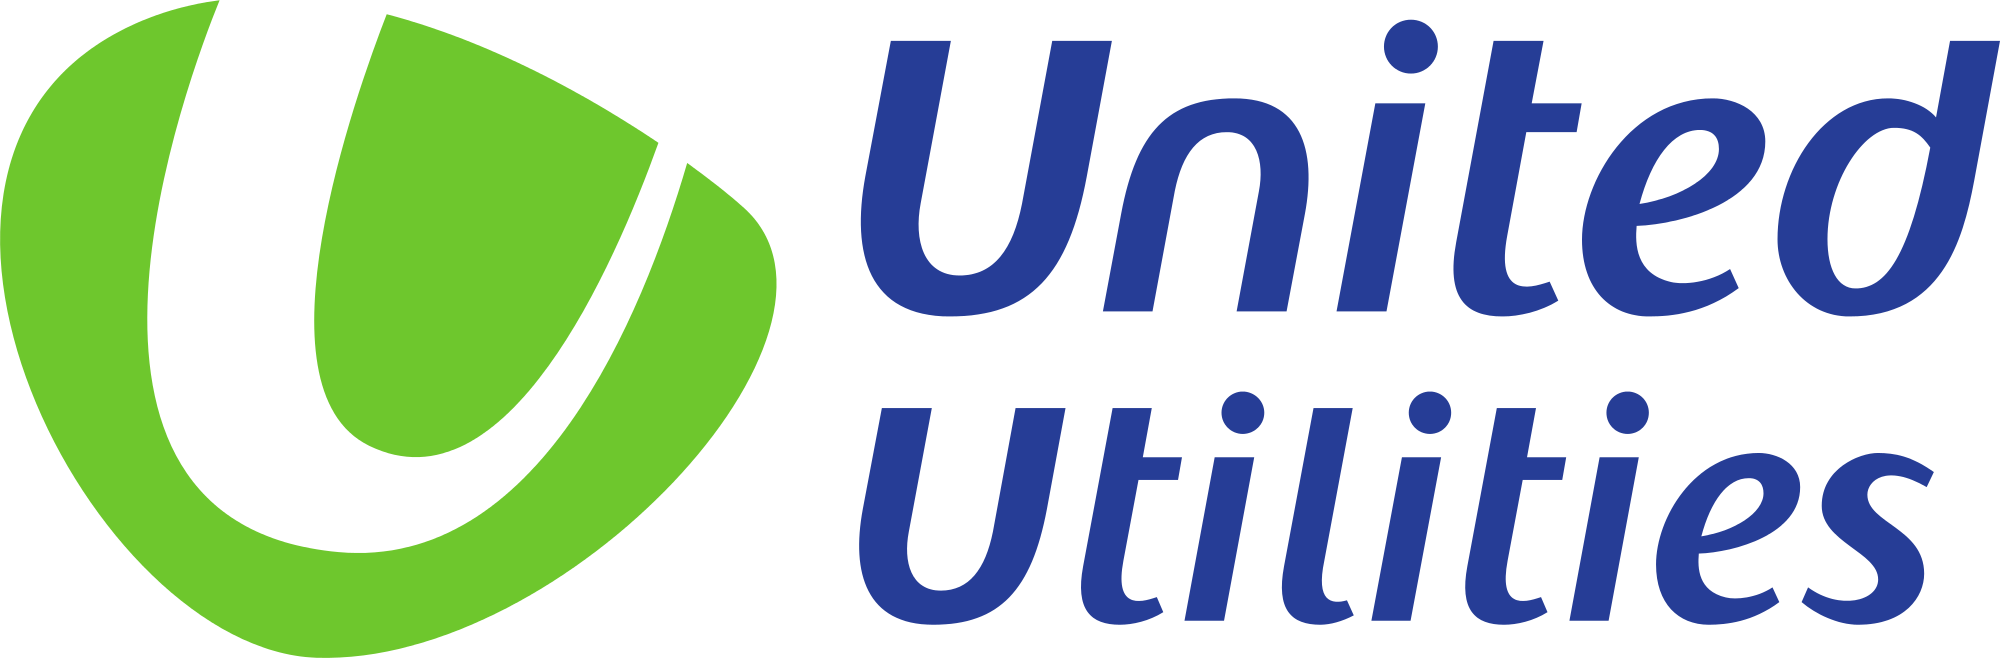 United_Utilities_logo_svg.png